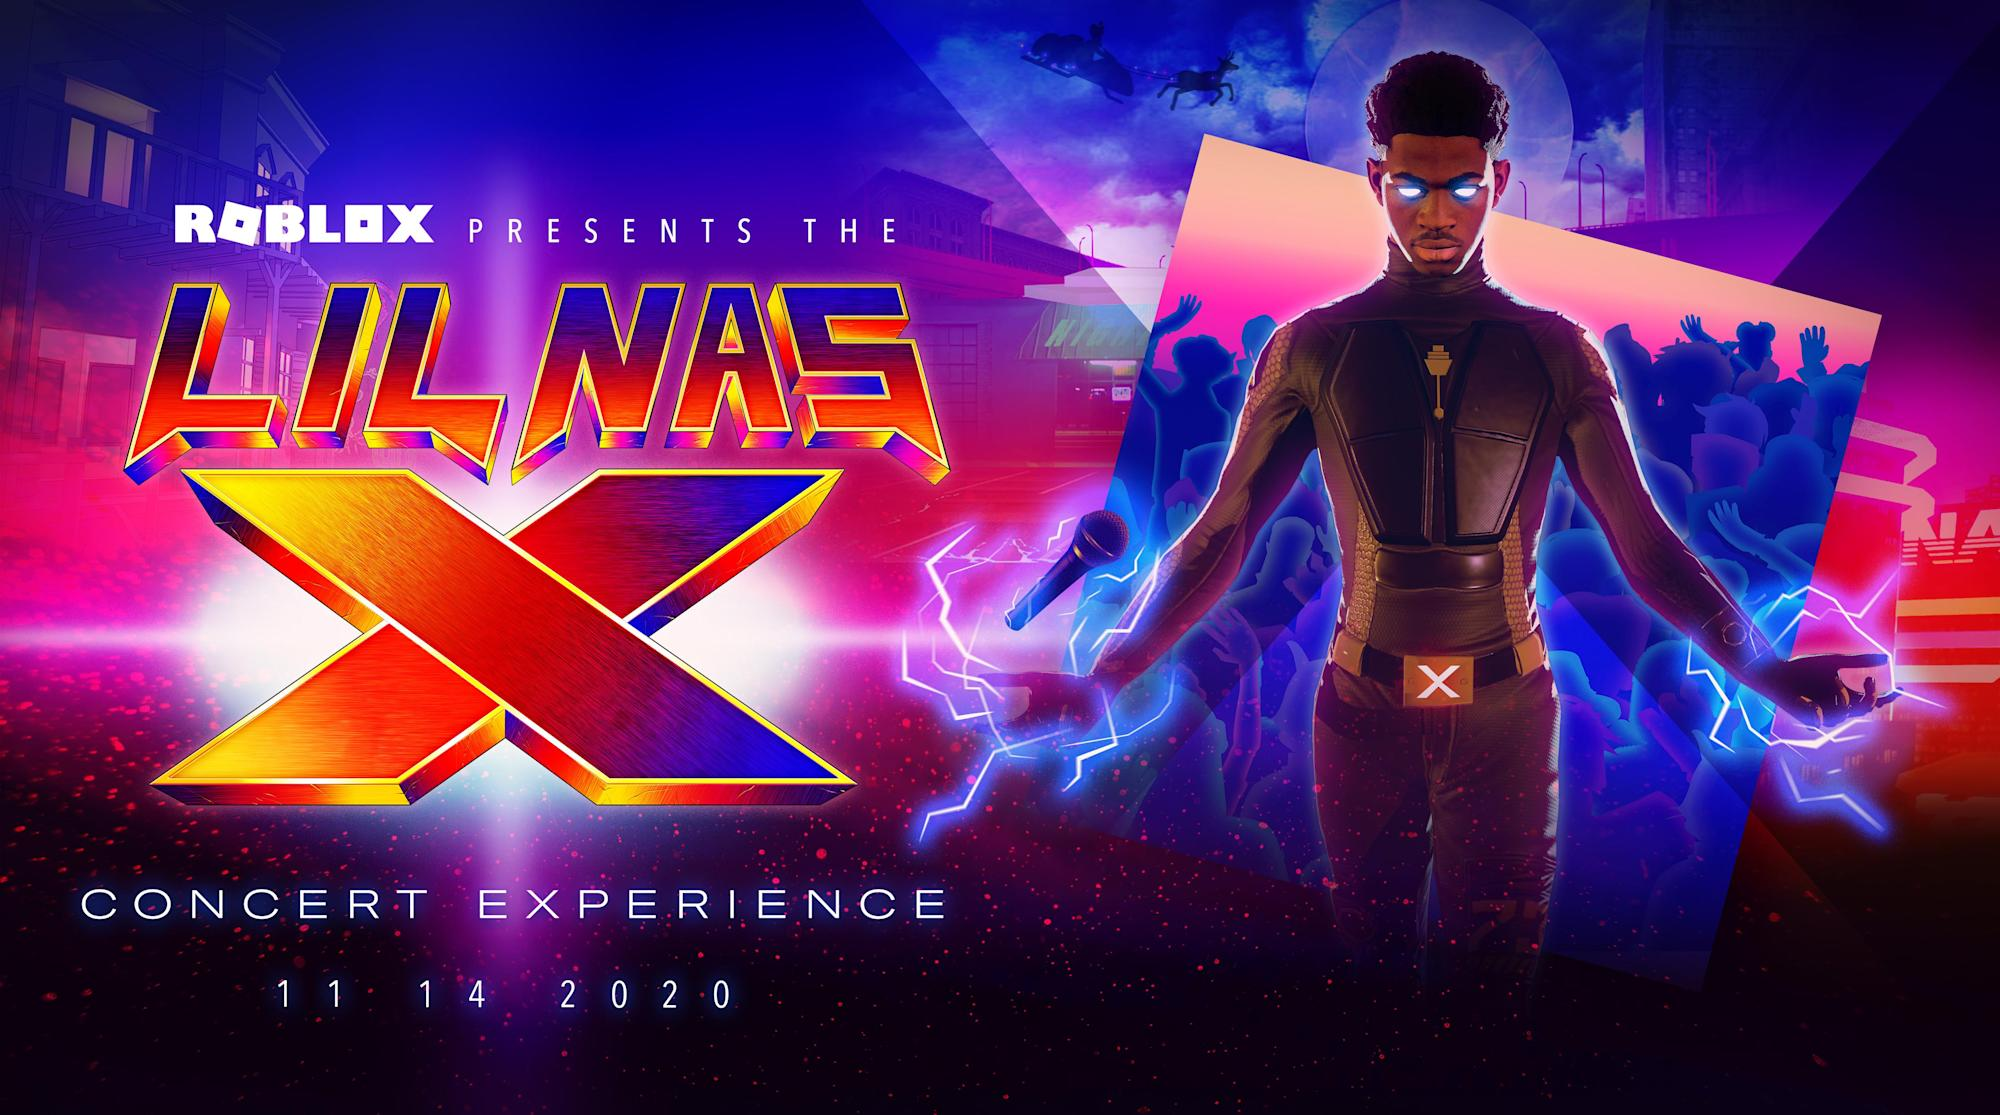 Roblox To Host Its First Virtual Concert Featuring Lil Nas X We just found it on this blog , and they updating it everyday. virtual concert featuring lil nas x